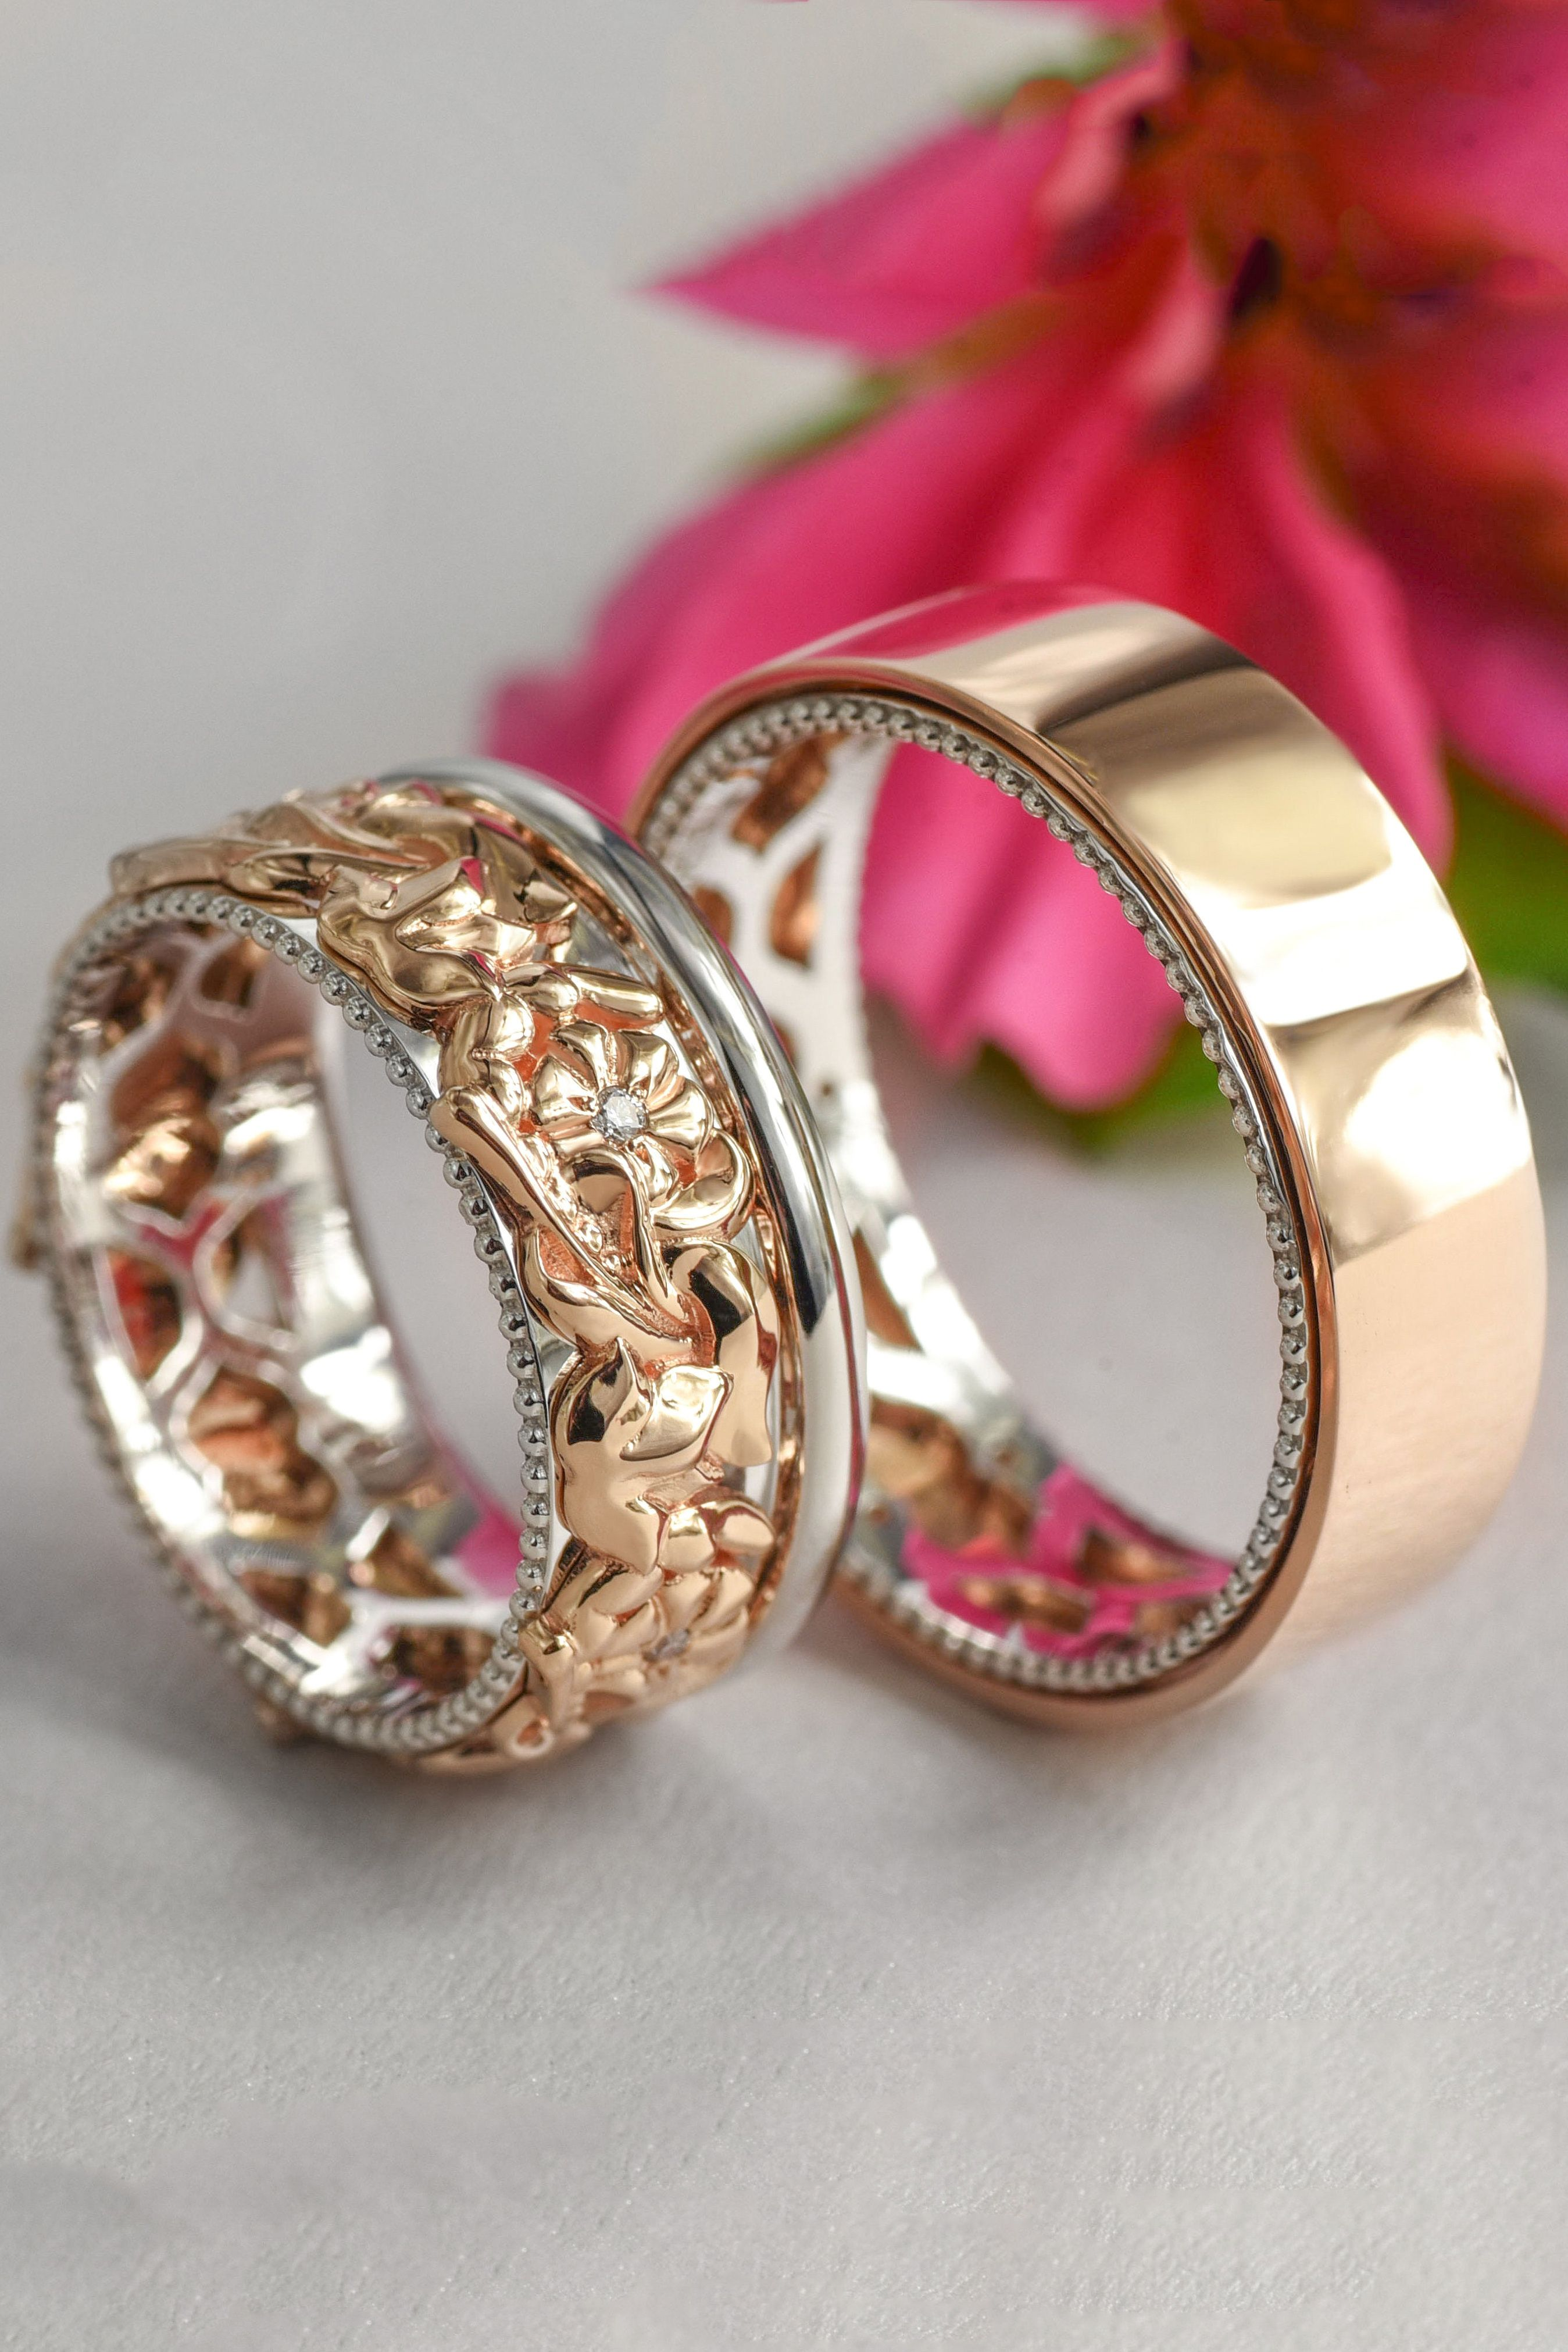 41++ Wedding band sets his and hers etsy ideas in 2021